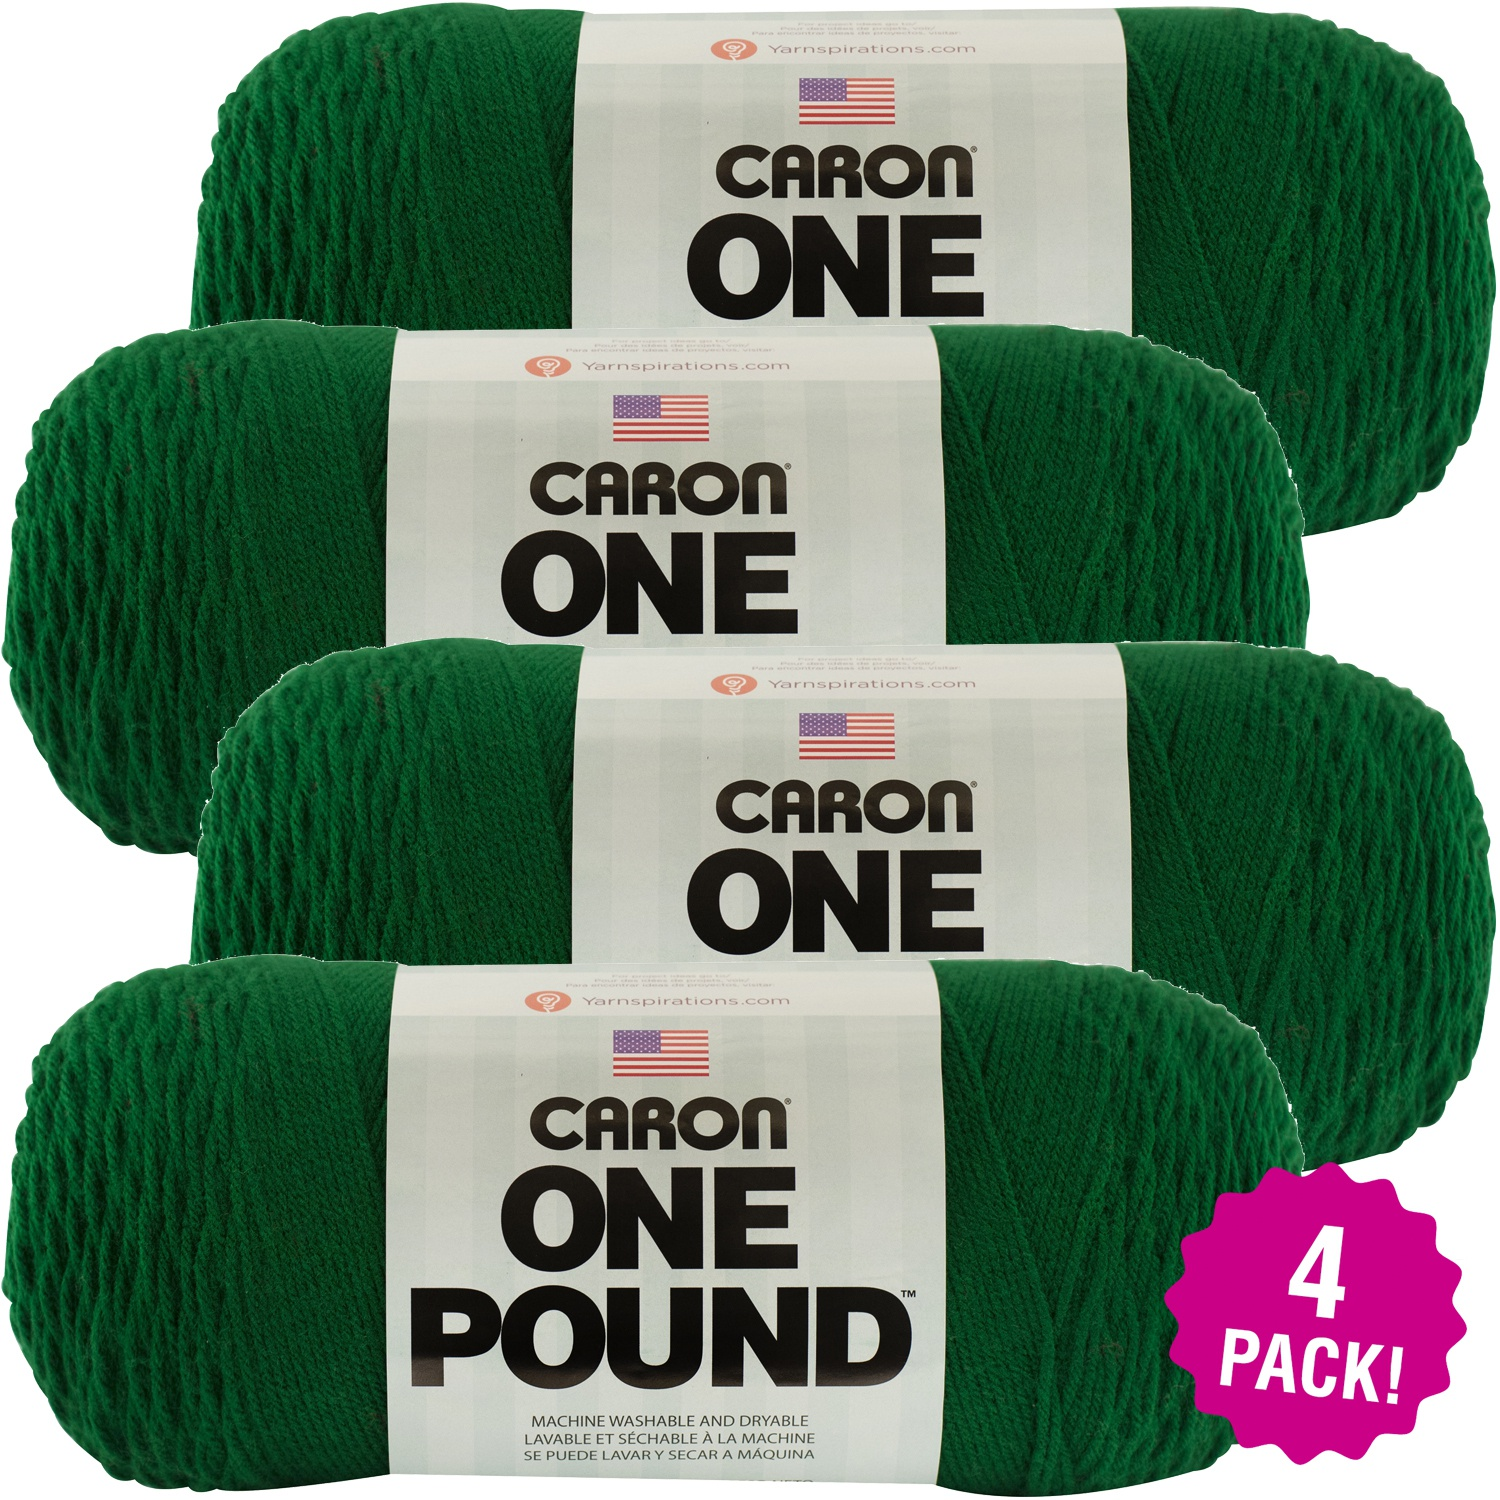 Caron One Pound Yarn - Kelly Green, Multipack of 4